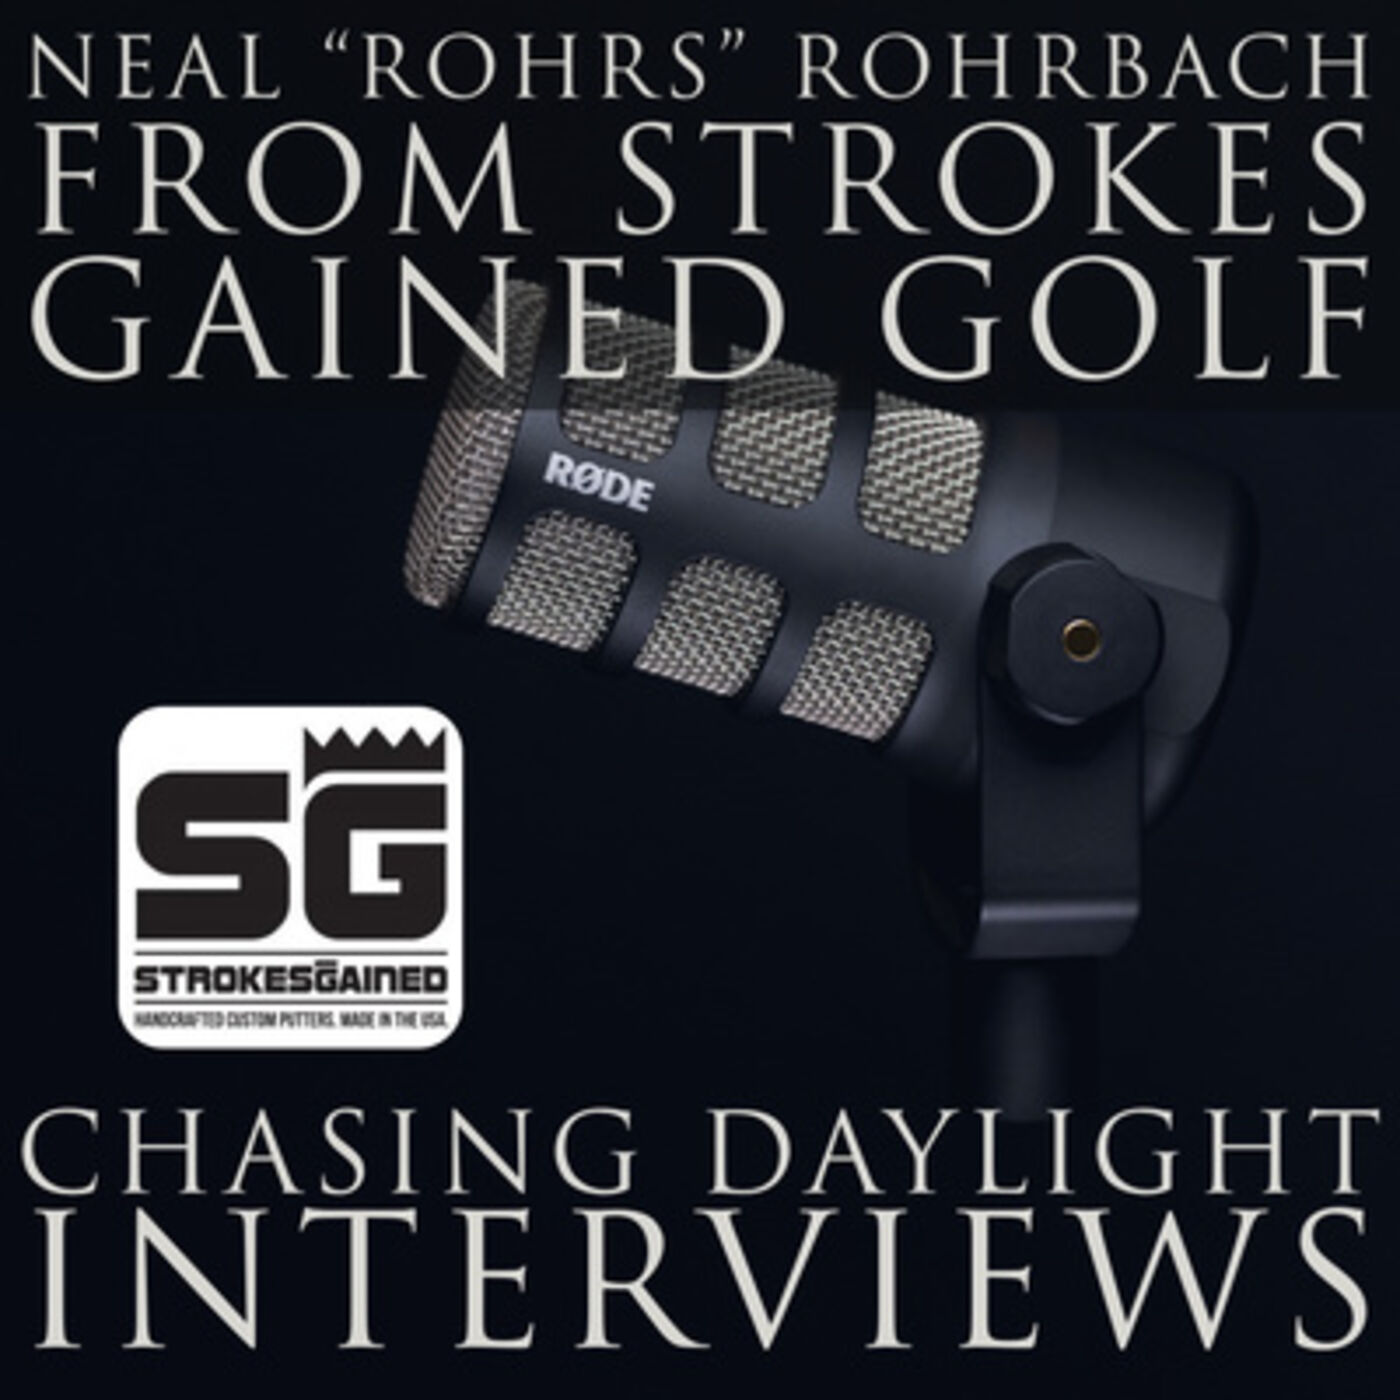 """E14: Neal """"Rohrs"""" Rohrbach from Strokes Gained Putters"""